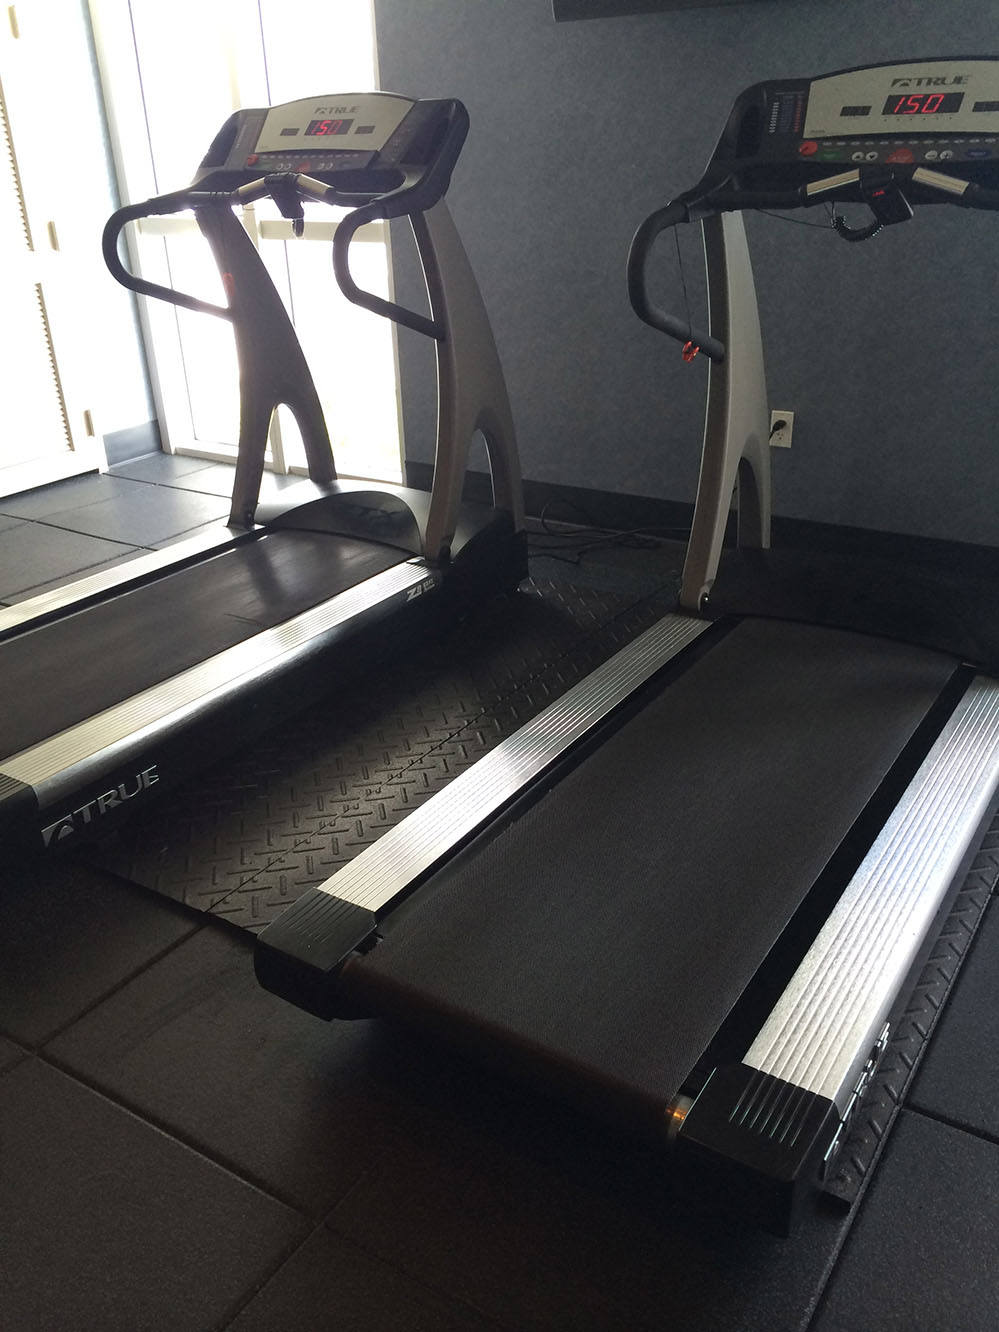 Gym Flooring Miami